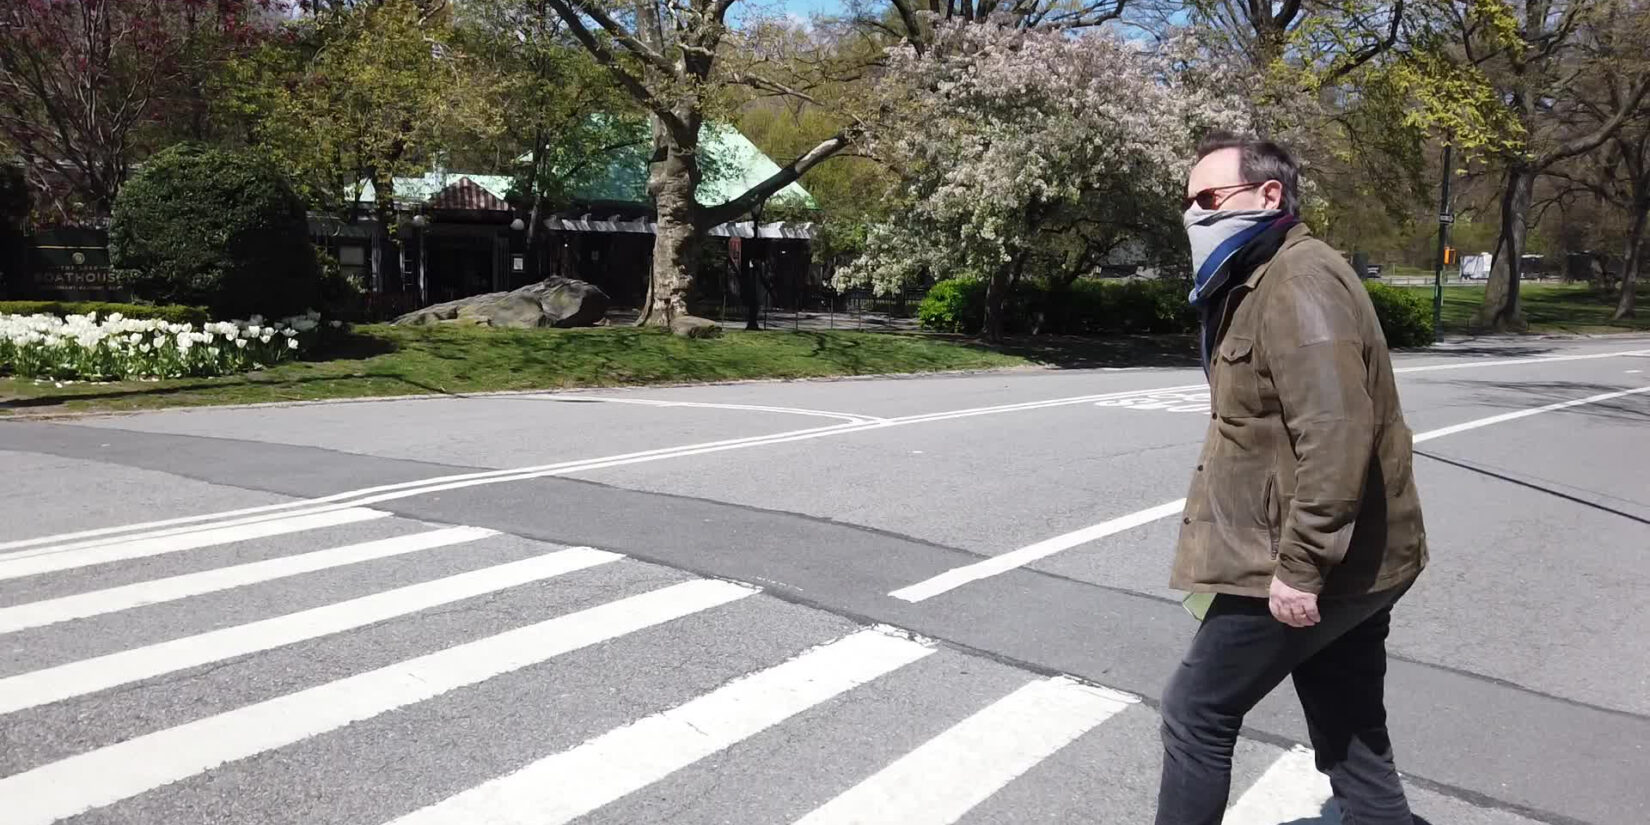 Mason pictured in the crosswalk of a Park drive